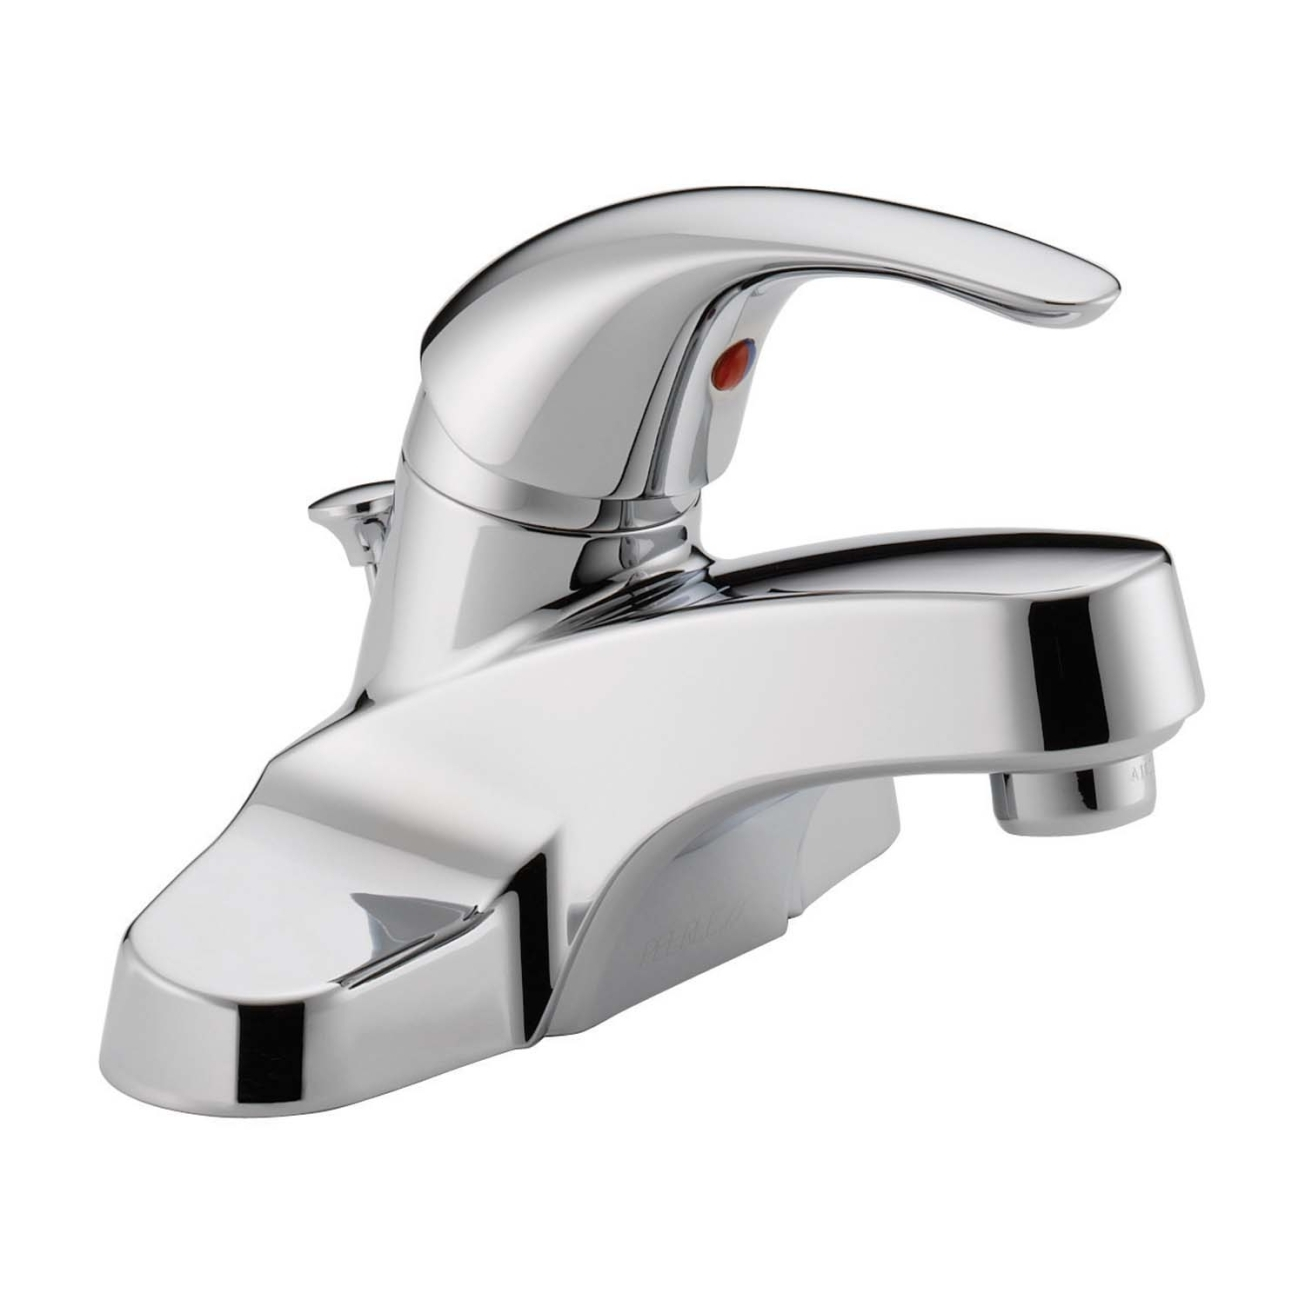 Ideas, different types of single handle shower faucets different types of single handle shower faucets bathroom faucets and sink faucets at ace hardware 1305 x 1305  .